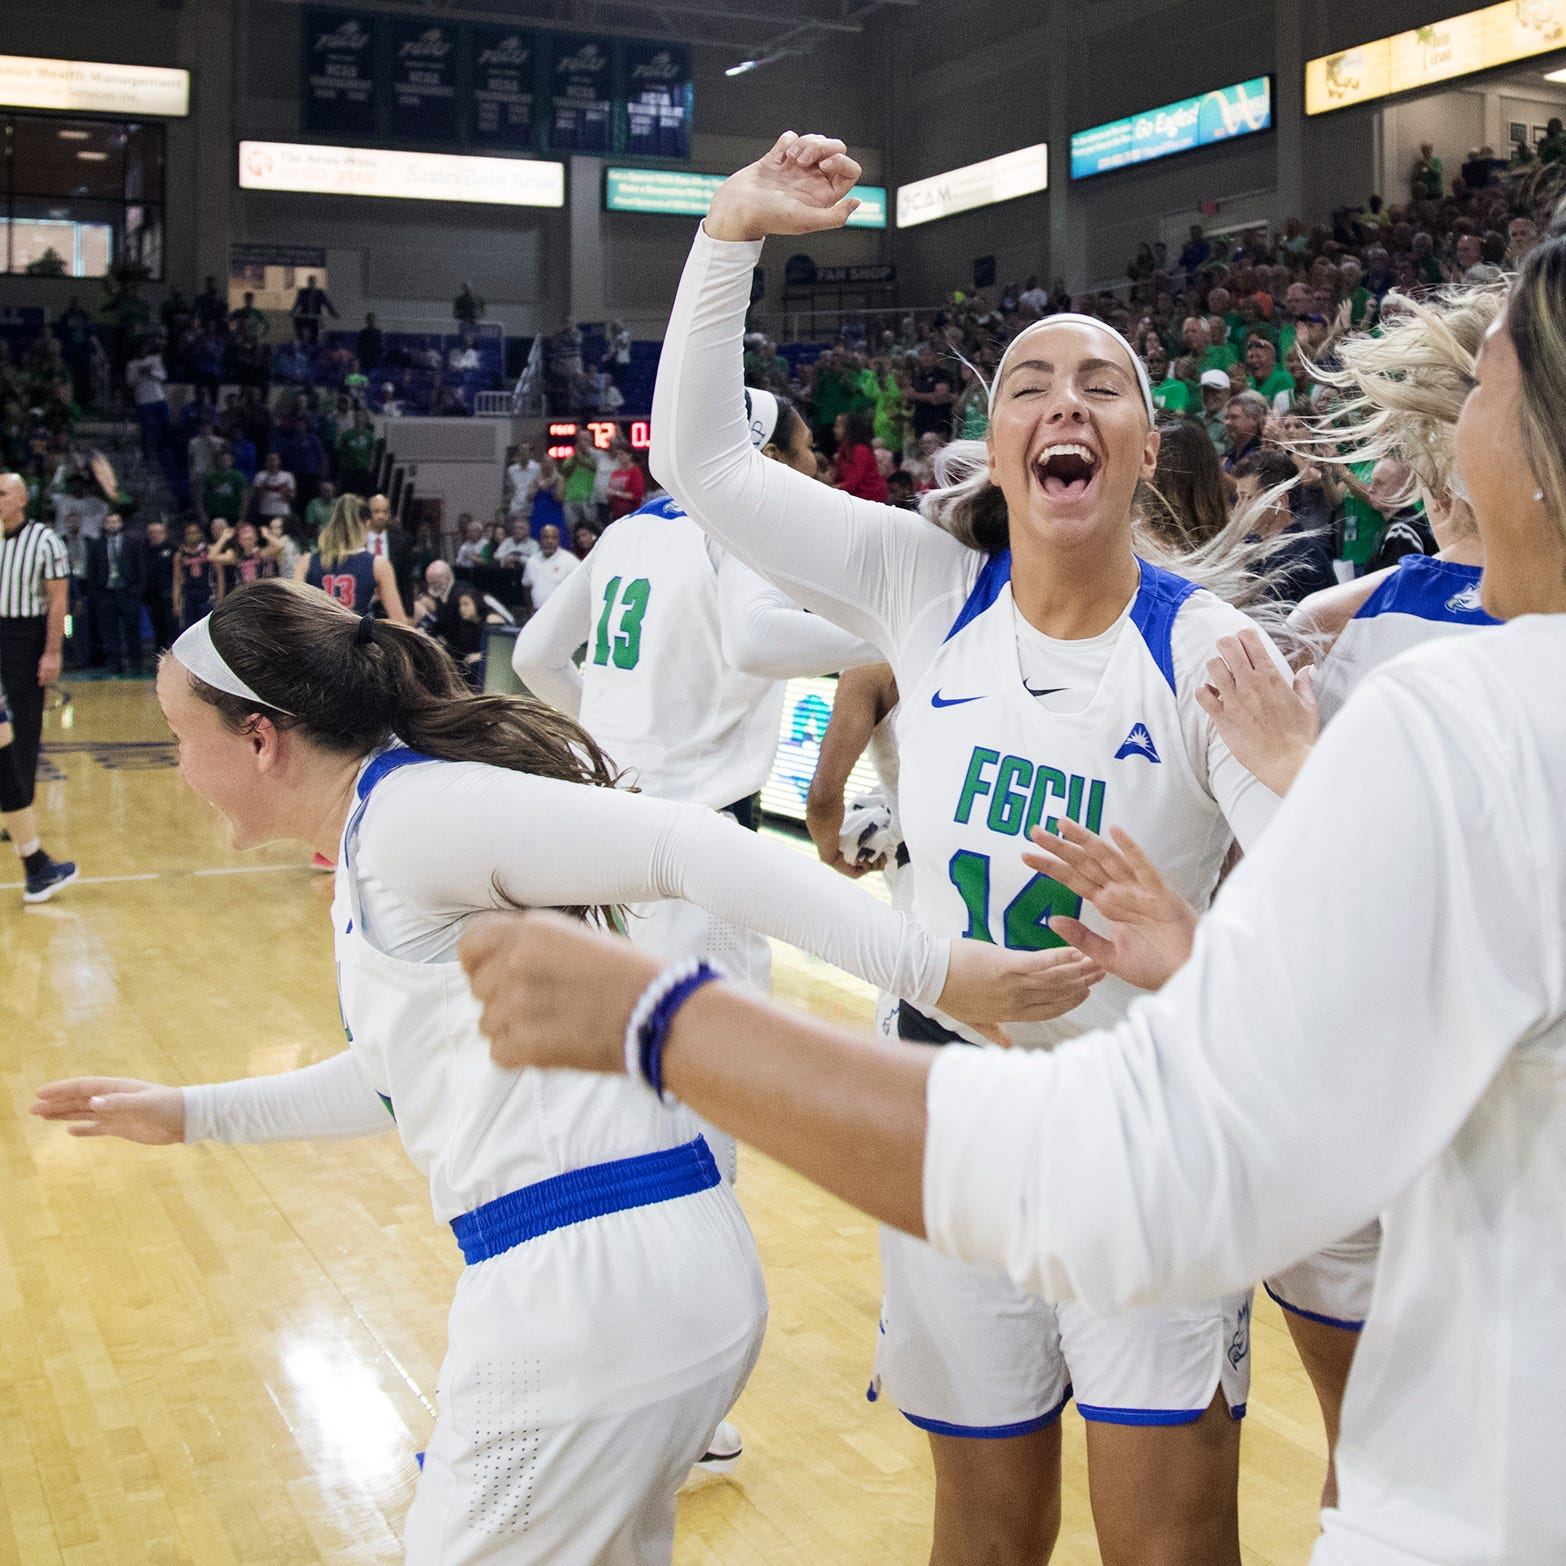 College basketball: FGCU women win ASUN title to earn trip to NCAA tournament